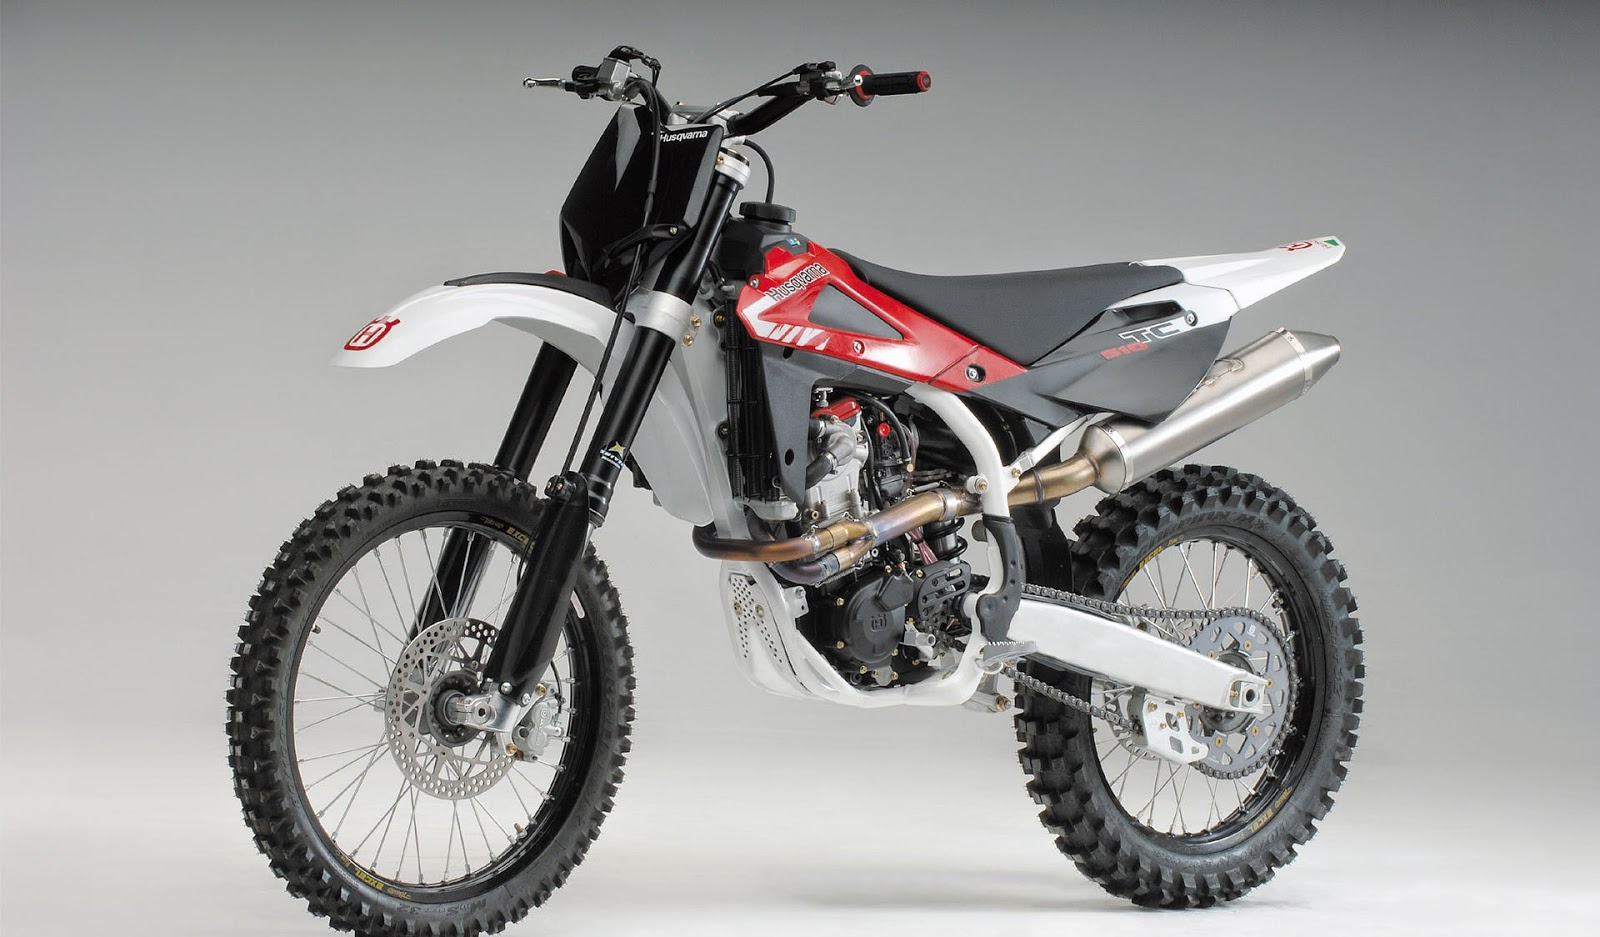 Husqvarna TC510 Dirt Motorcycles Price